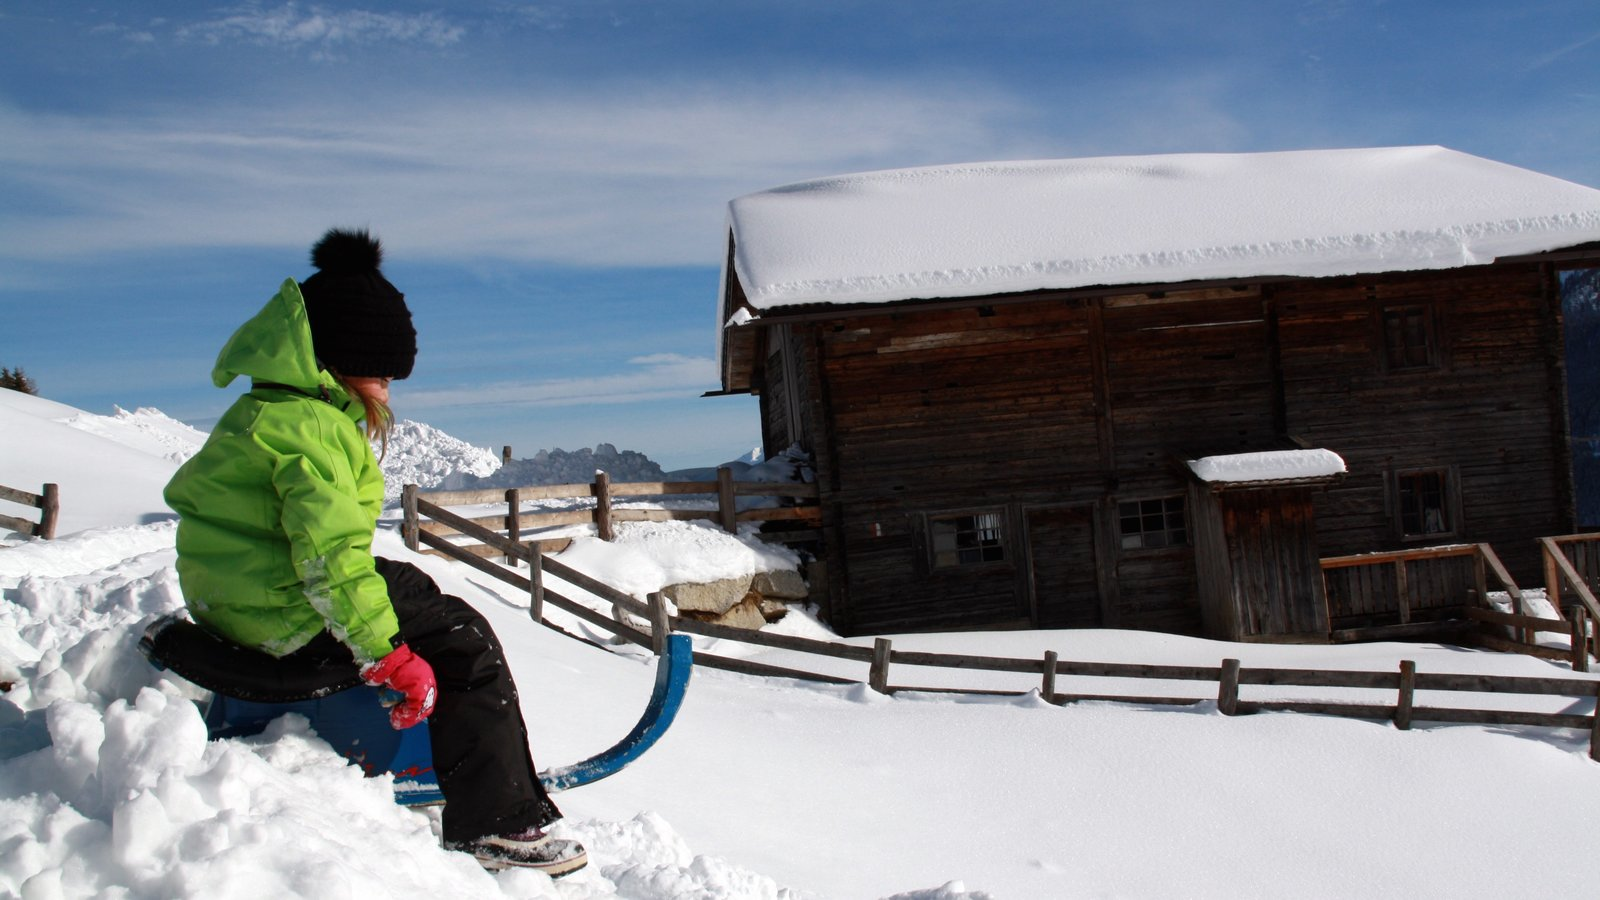 Kronplatz Ski Area which includes snow and snow tubing as well as children